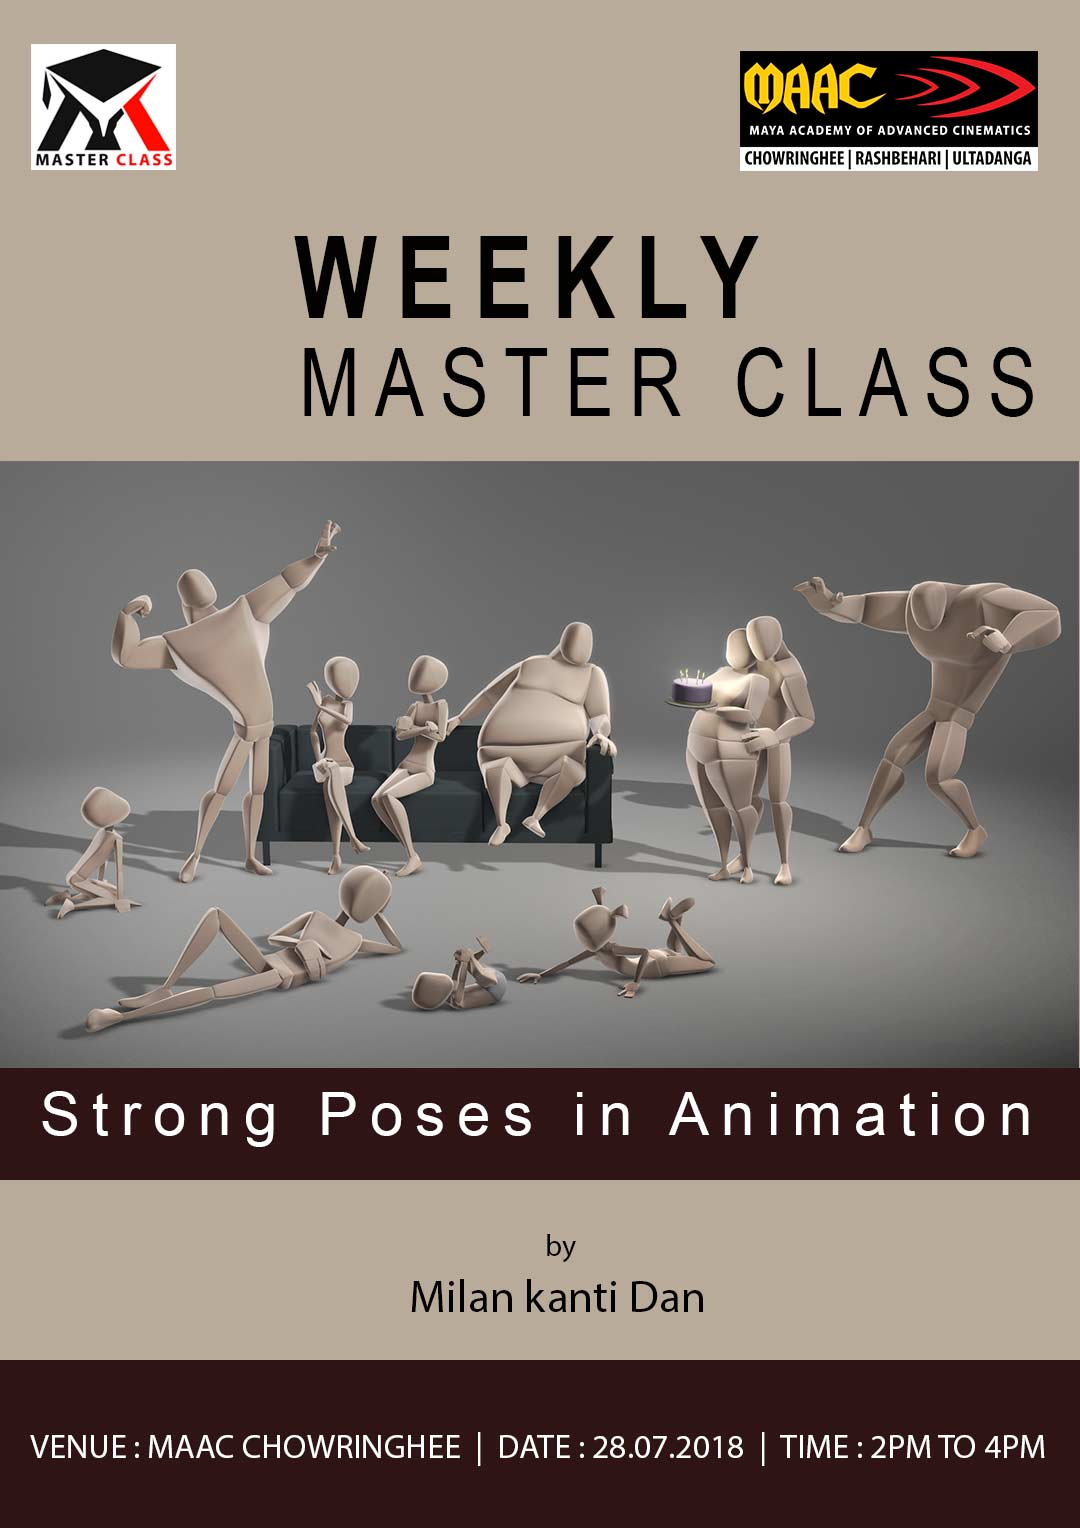 Weekly Master Class on Strong Poses in Animation